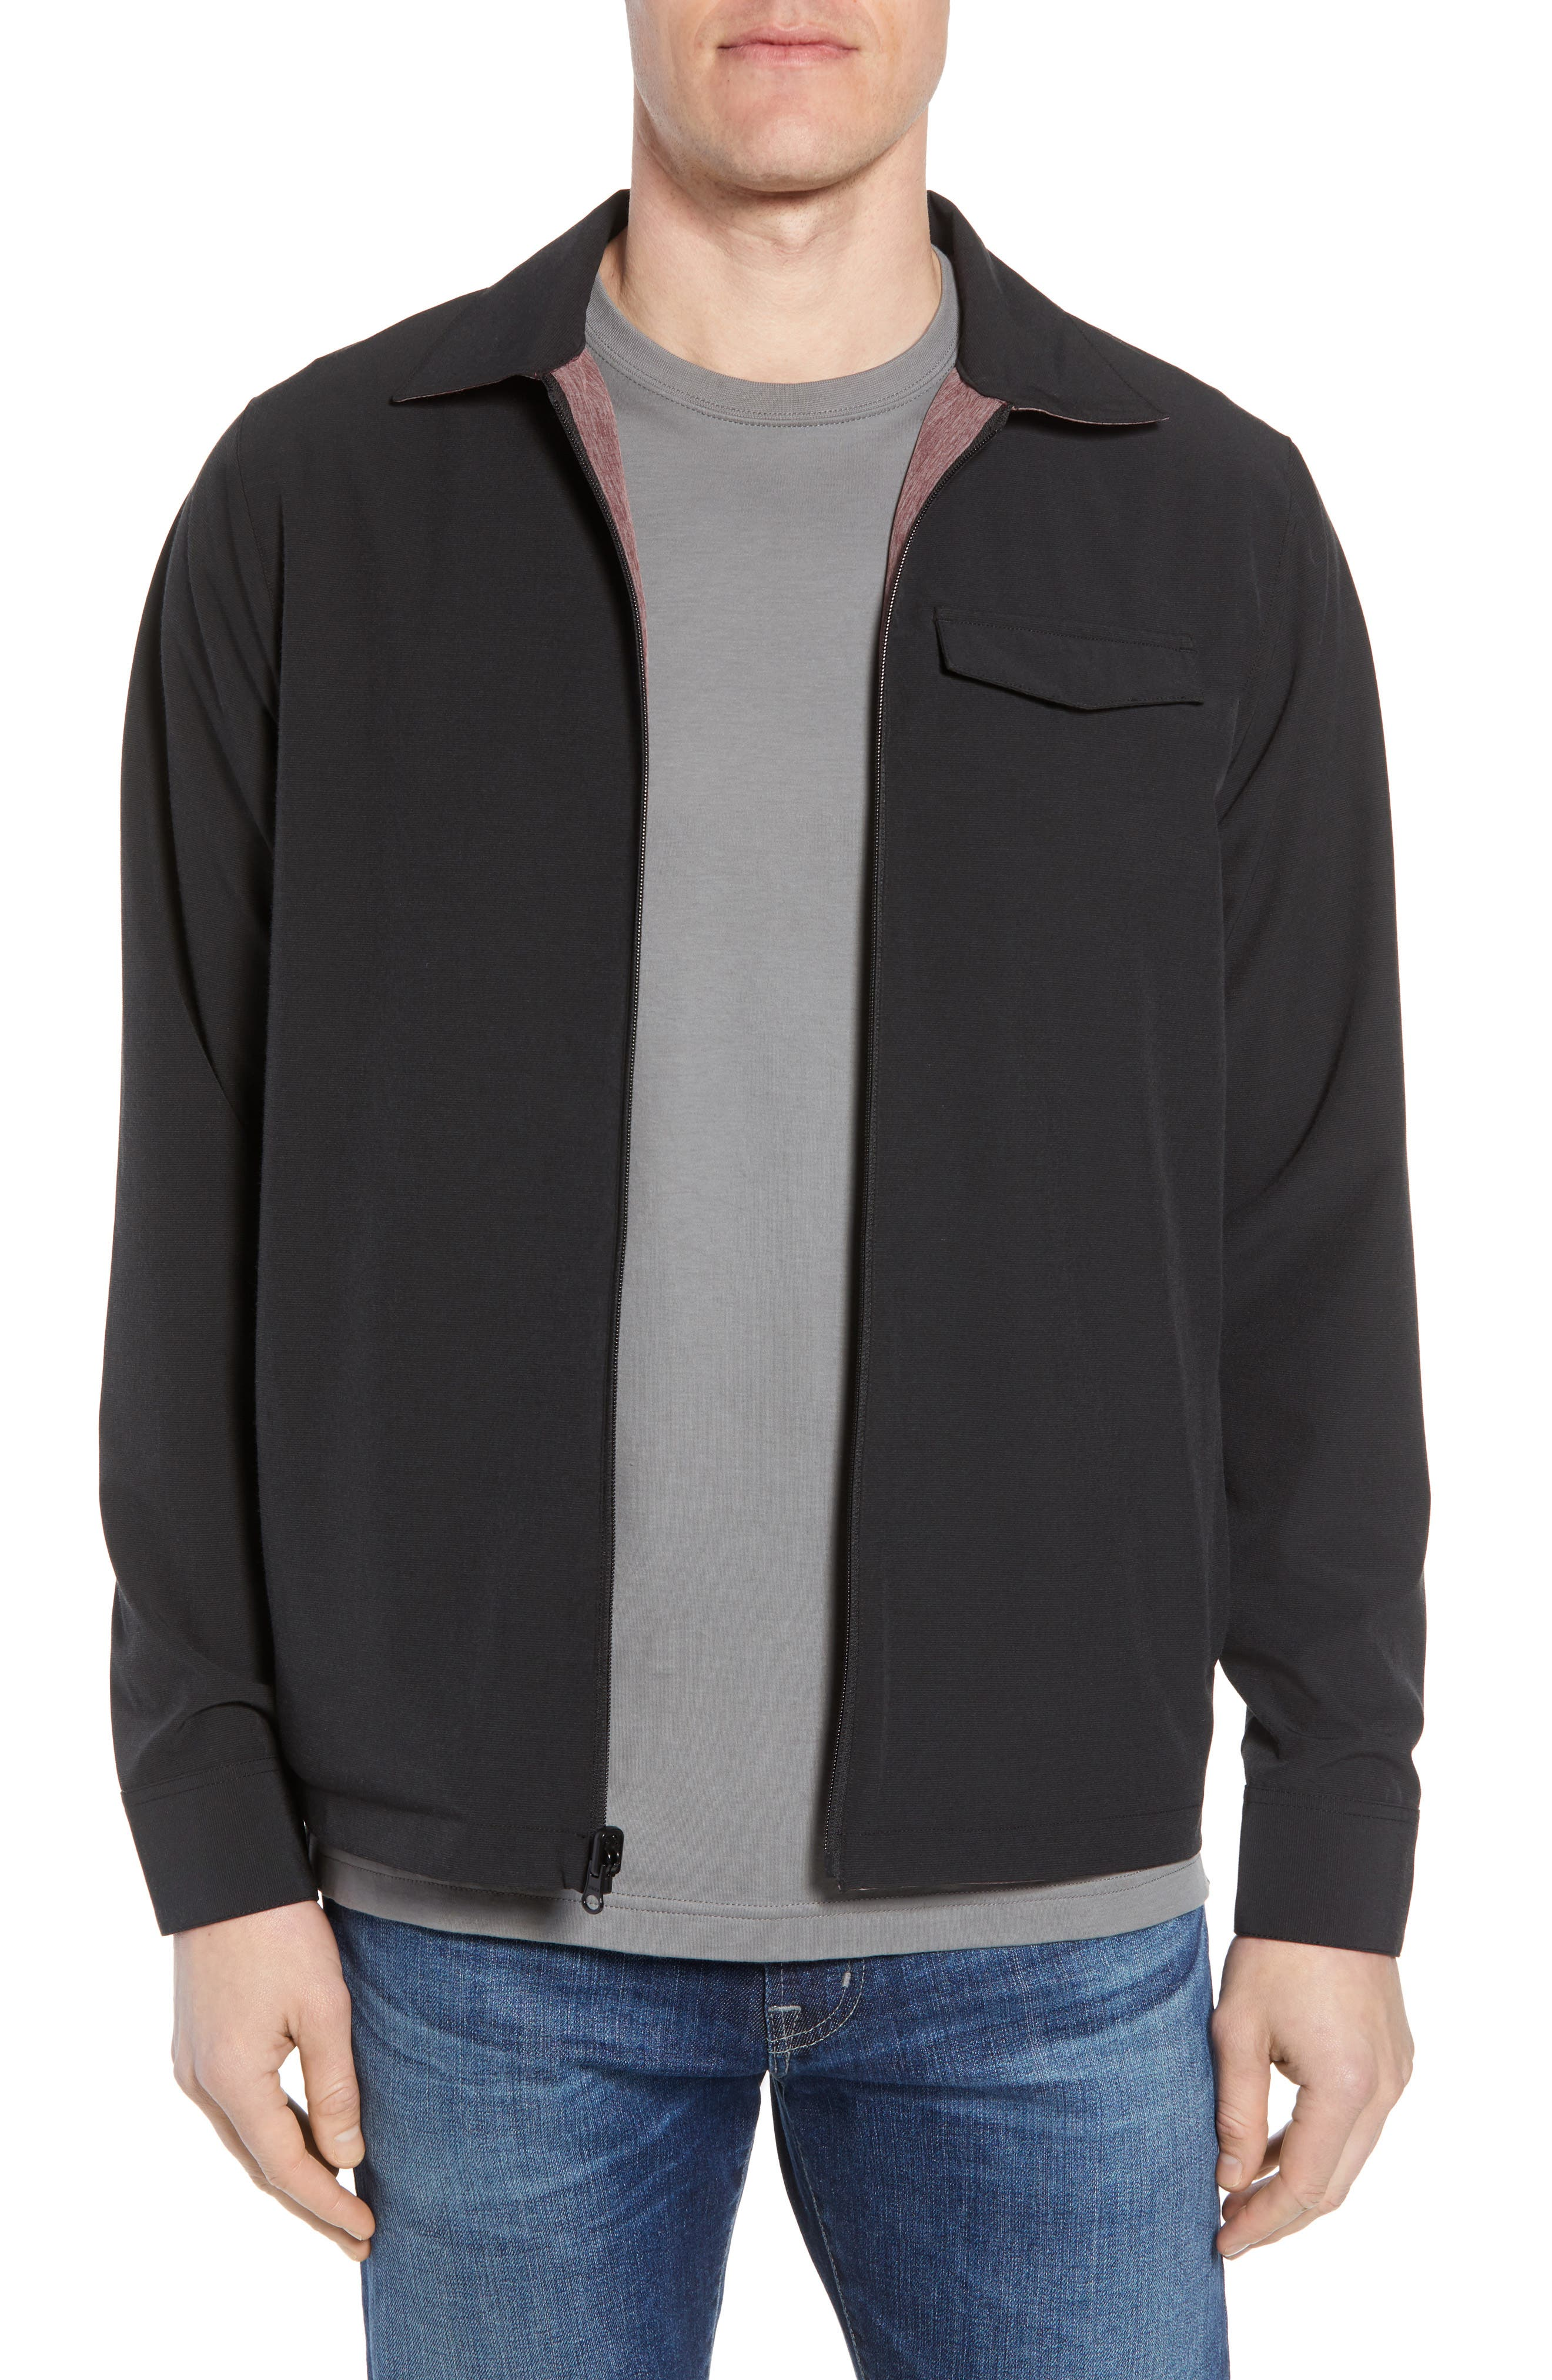 Battery Reversible Jacket,                         Main,                         color, BLACK/ WINETASTING